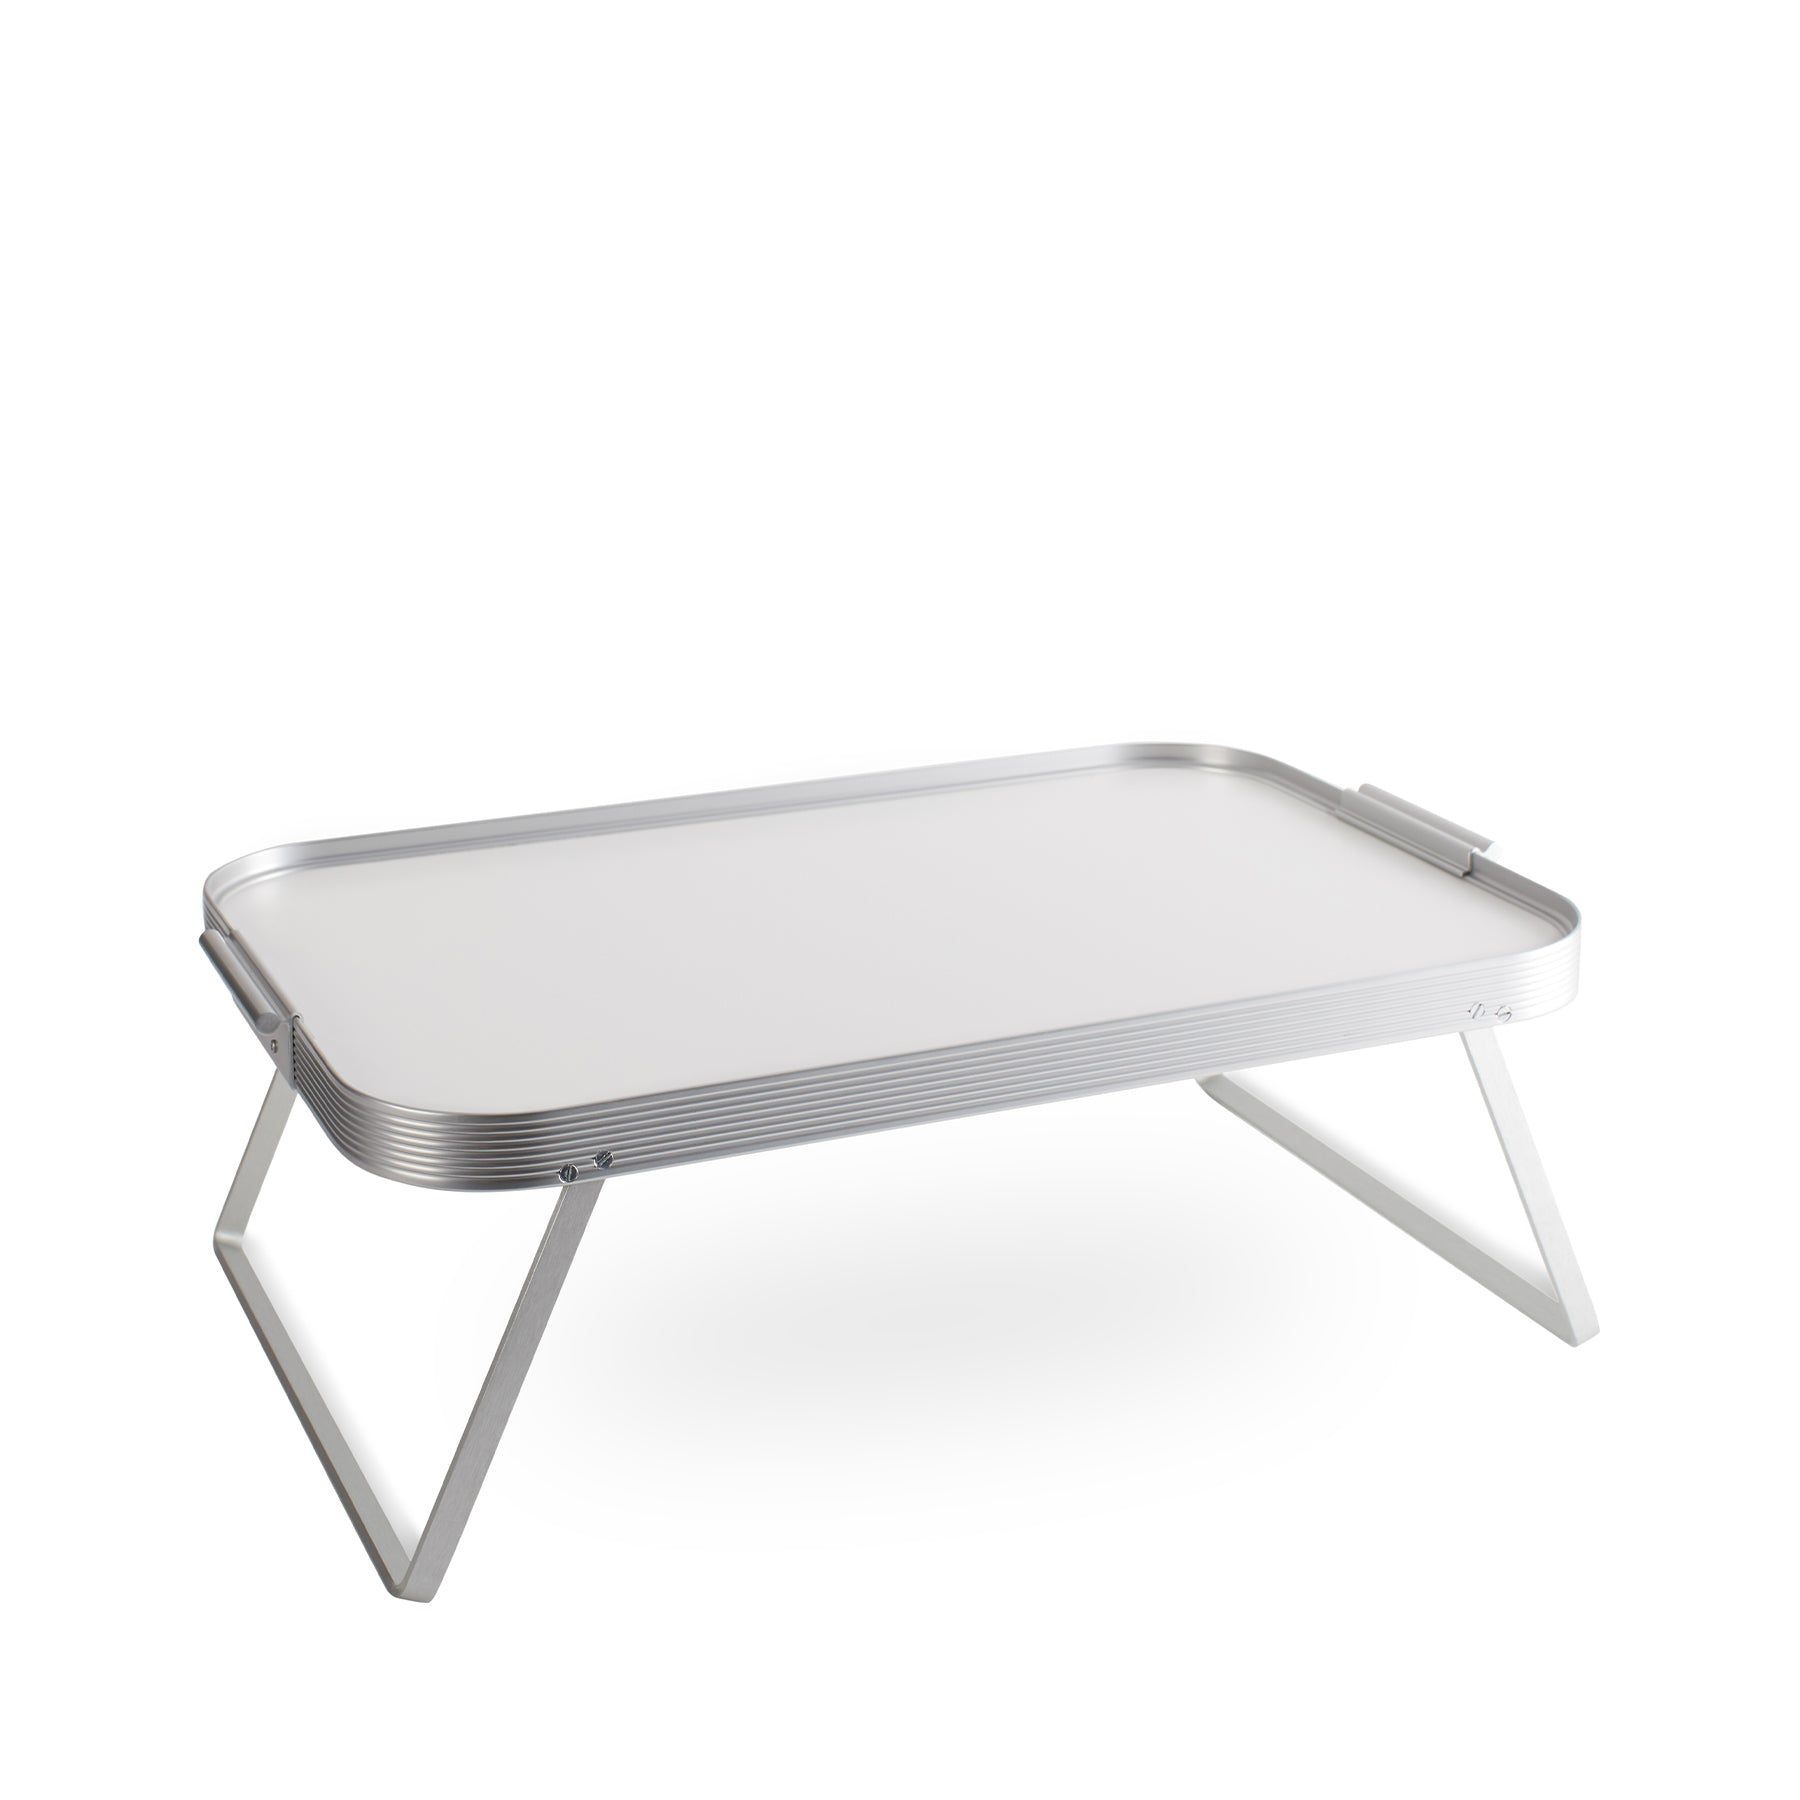 Bed Tray in White with Silver Surrounds Zoom Image 1